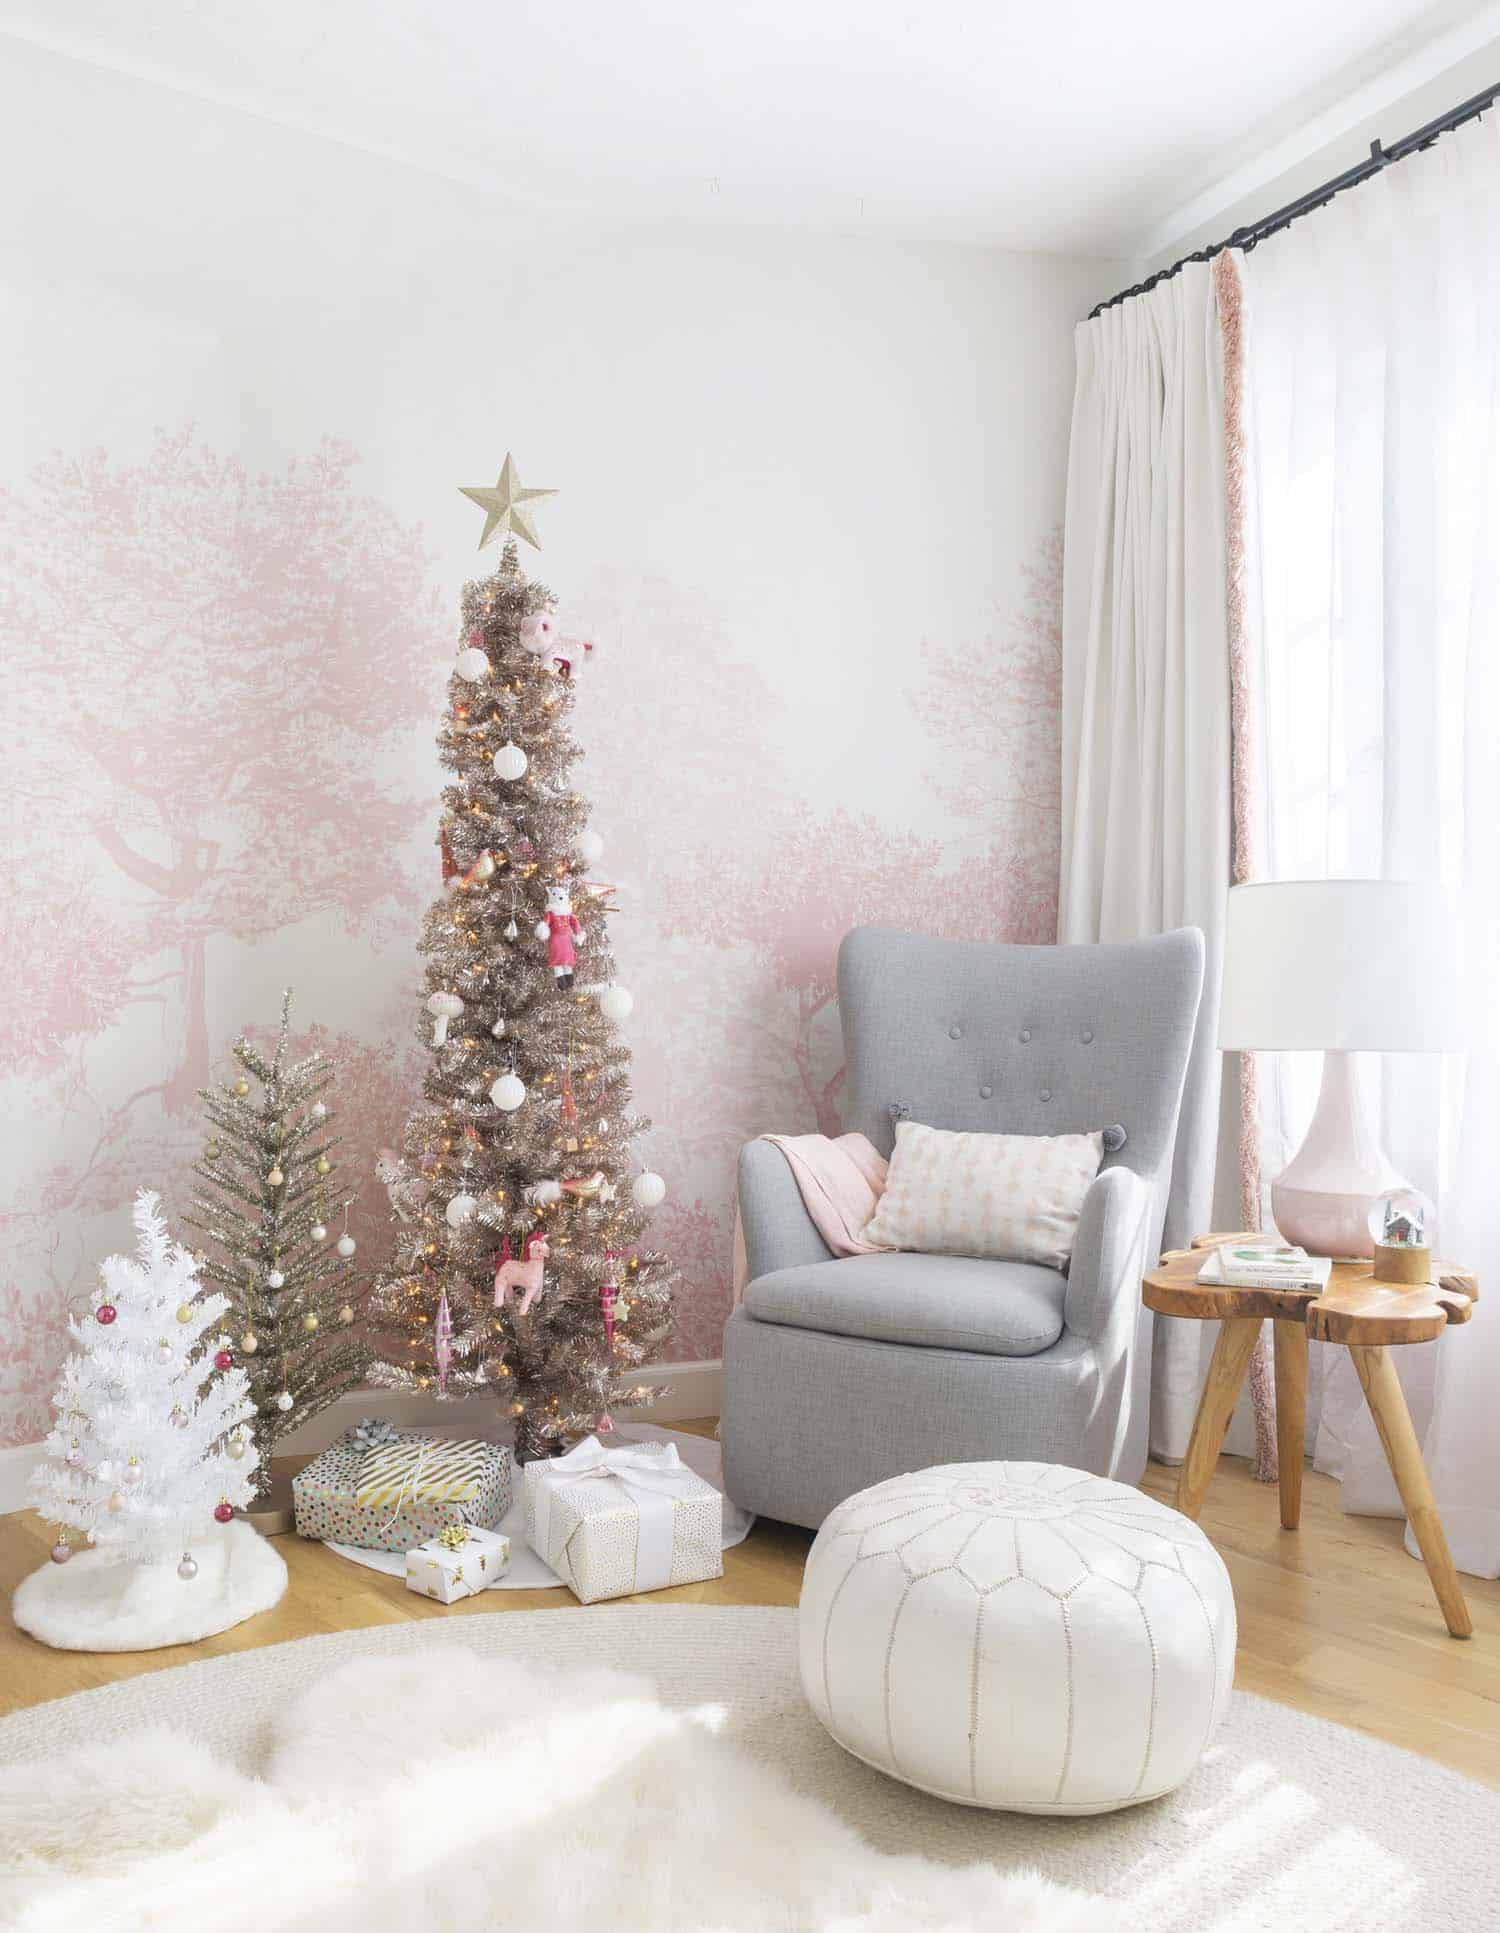 Amazing Christmas Decorating Trees-02-1 Kindesign